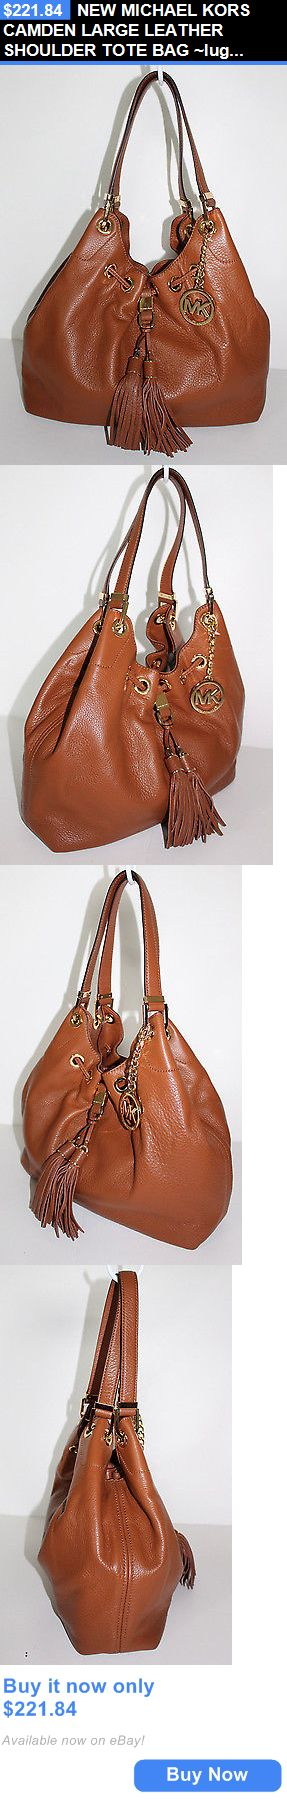 Women Handbags and Purses: New Michael Kors Camden Large Leather Shoulder Tote Bag ~Luggage BUY IT NOW ONLY: $221.84